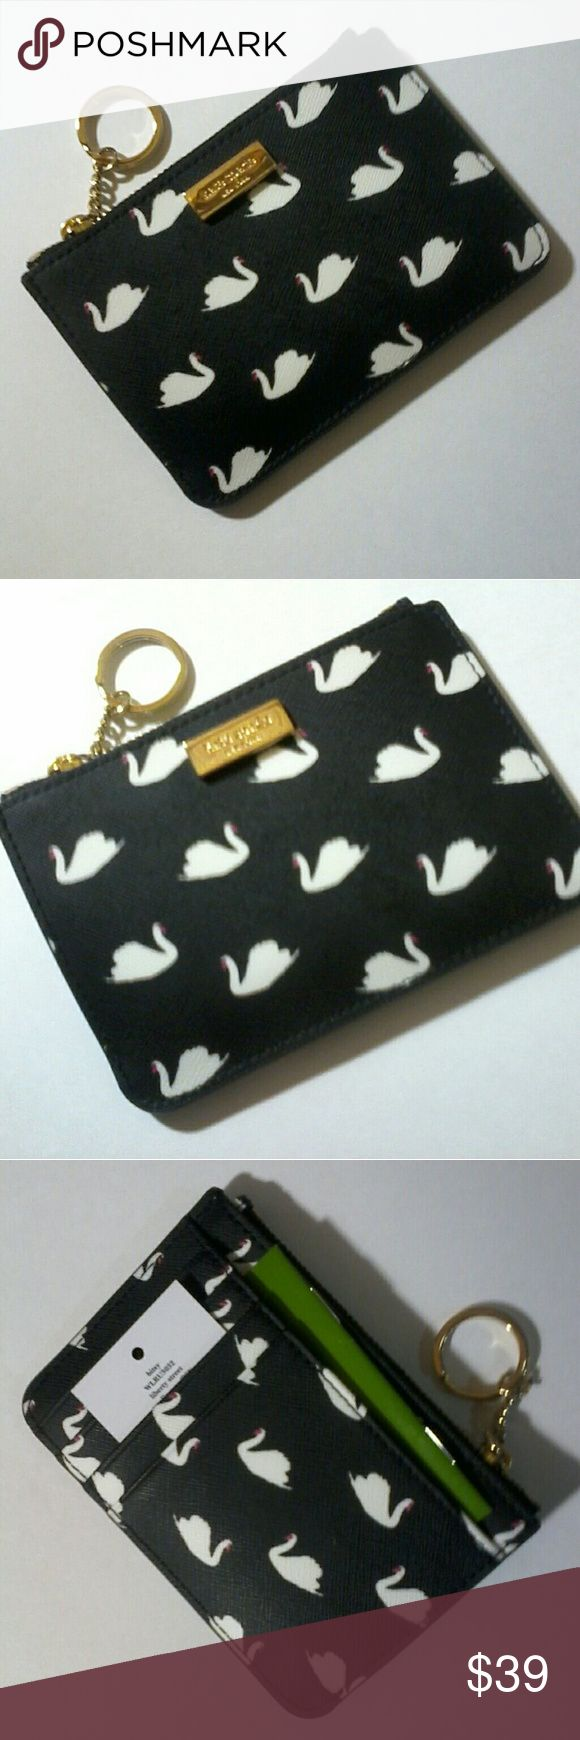 Kate spade bitsy swan coin purse keychain New kate spade Bags Wallets